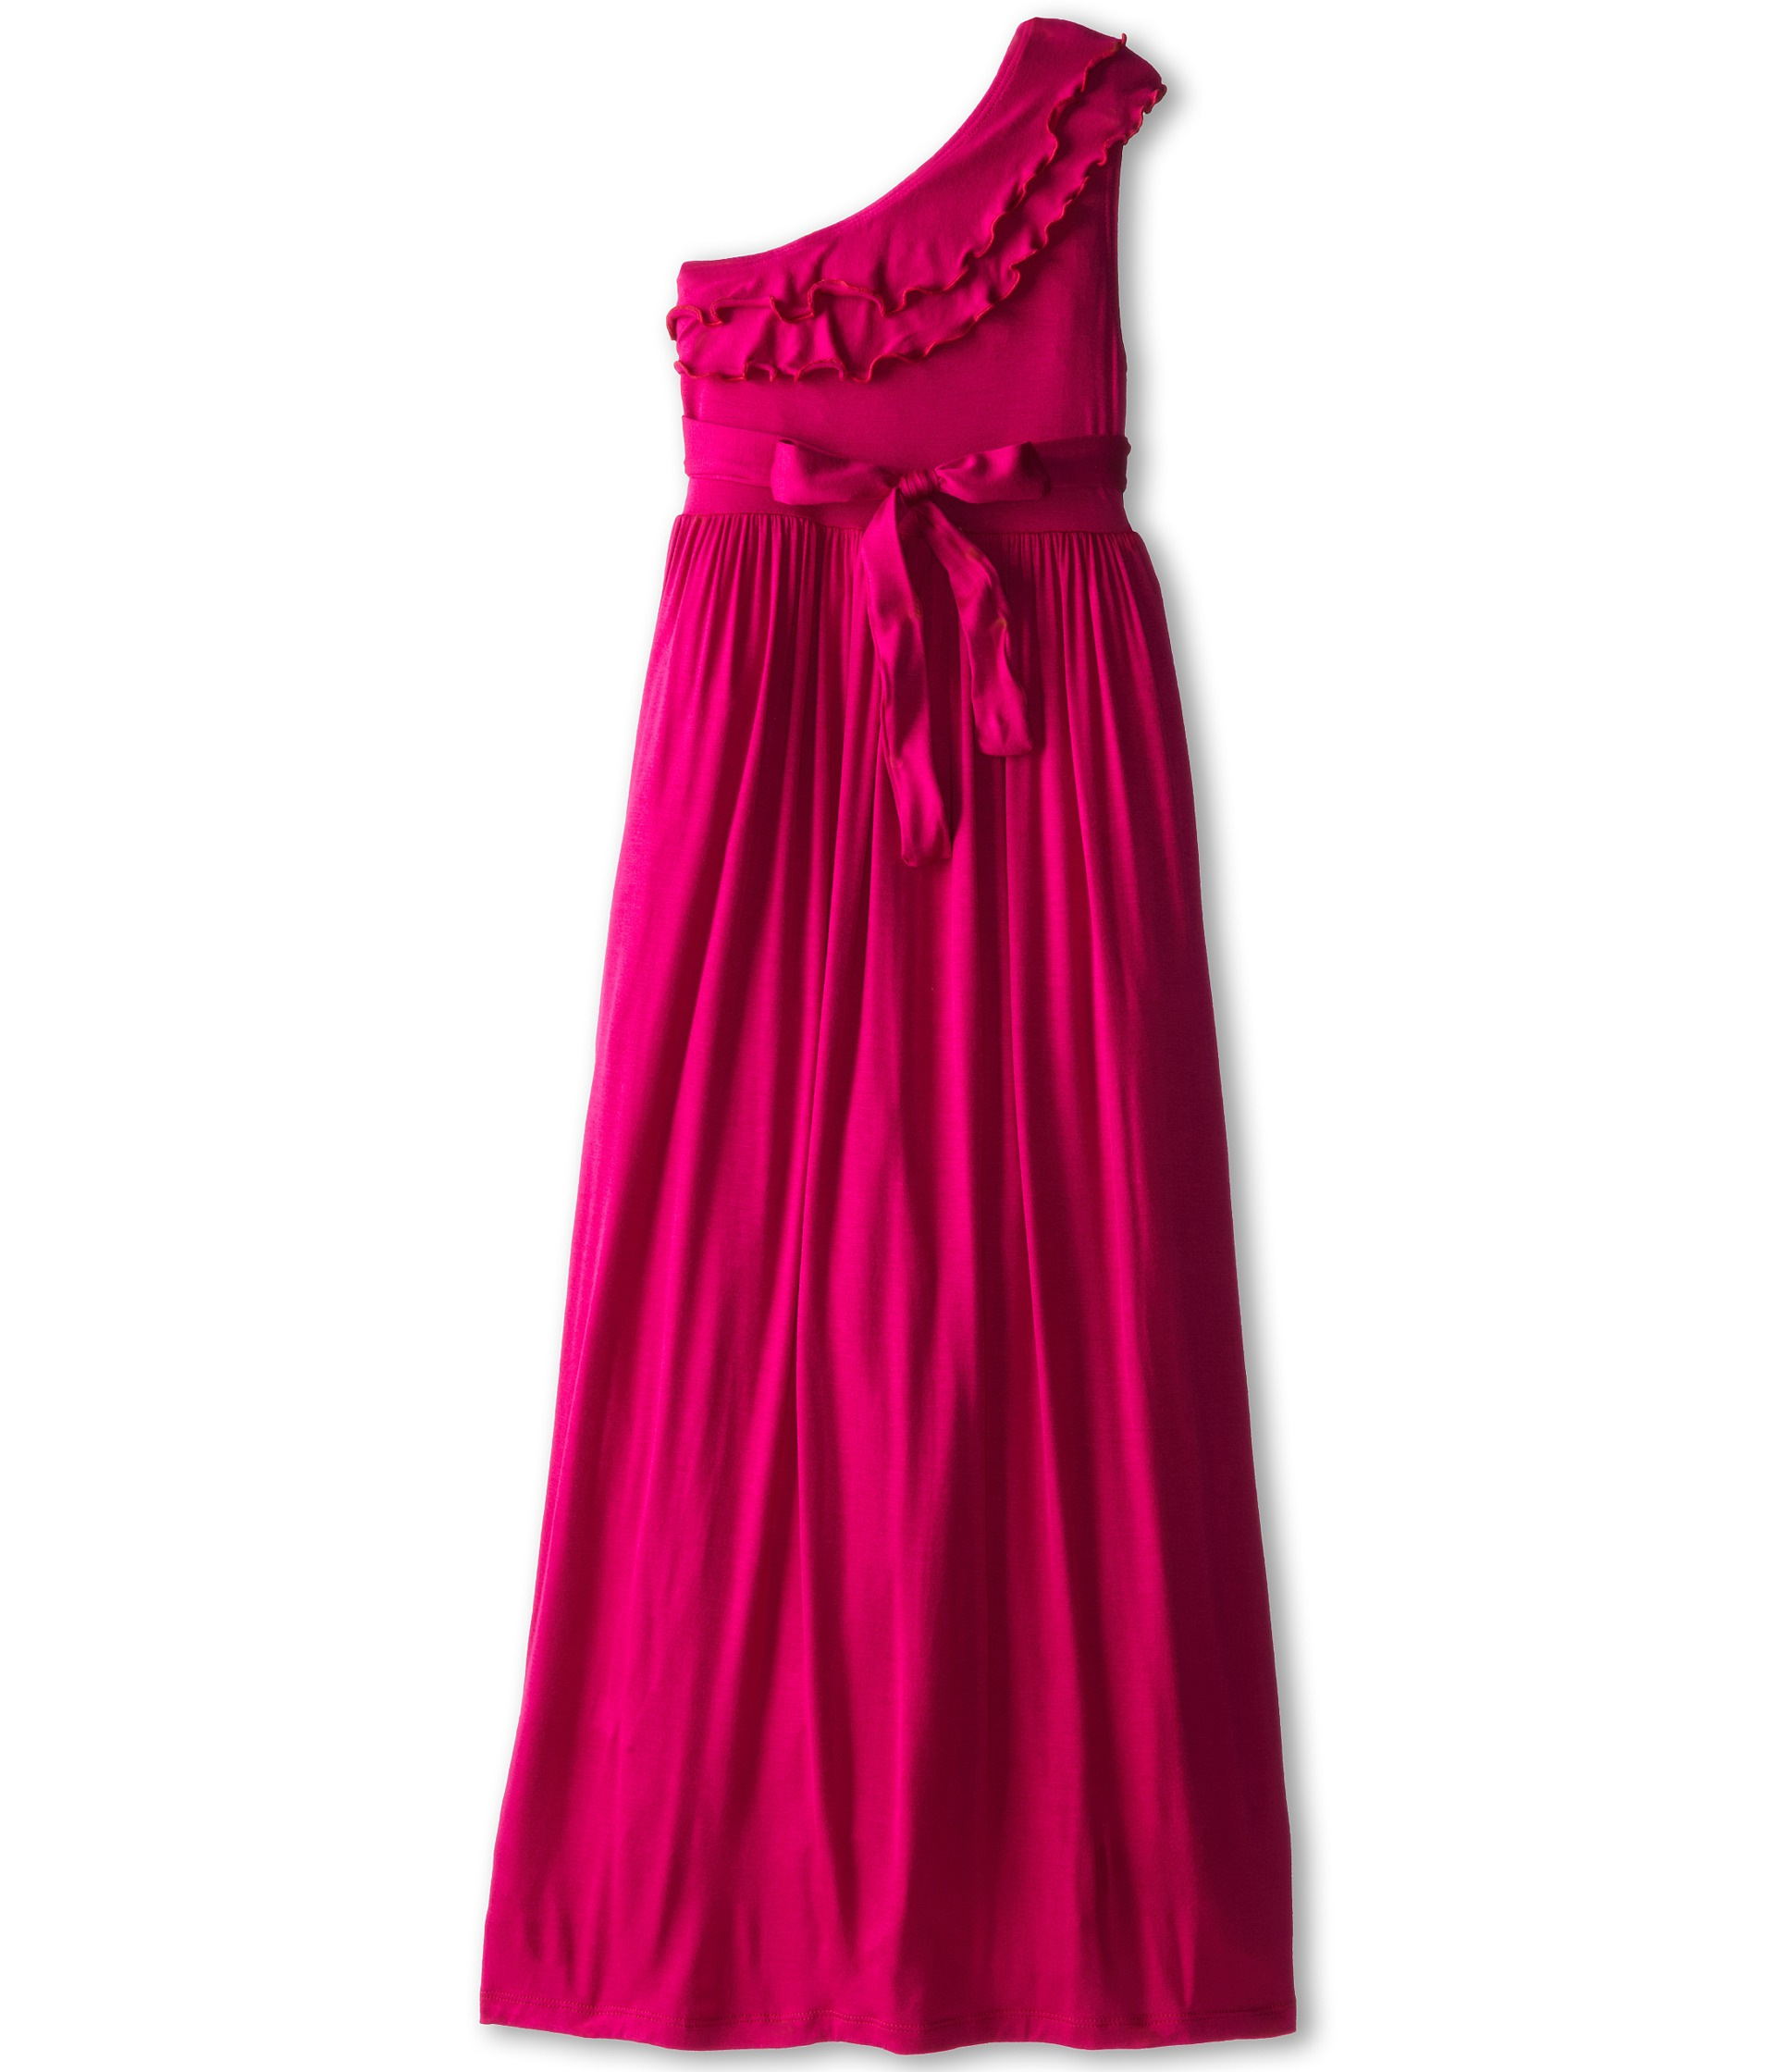 I have bought a long maxi dress which I need to cut a few inches off the hem and have actually make wider straps for the dress. Now if only I could find one long enough to cut at the hem to make decent sleeves with haha.